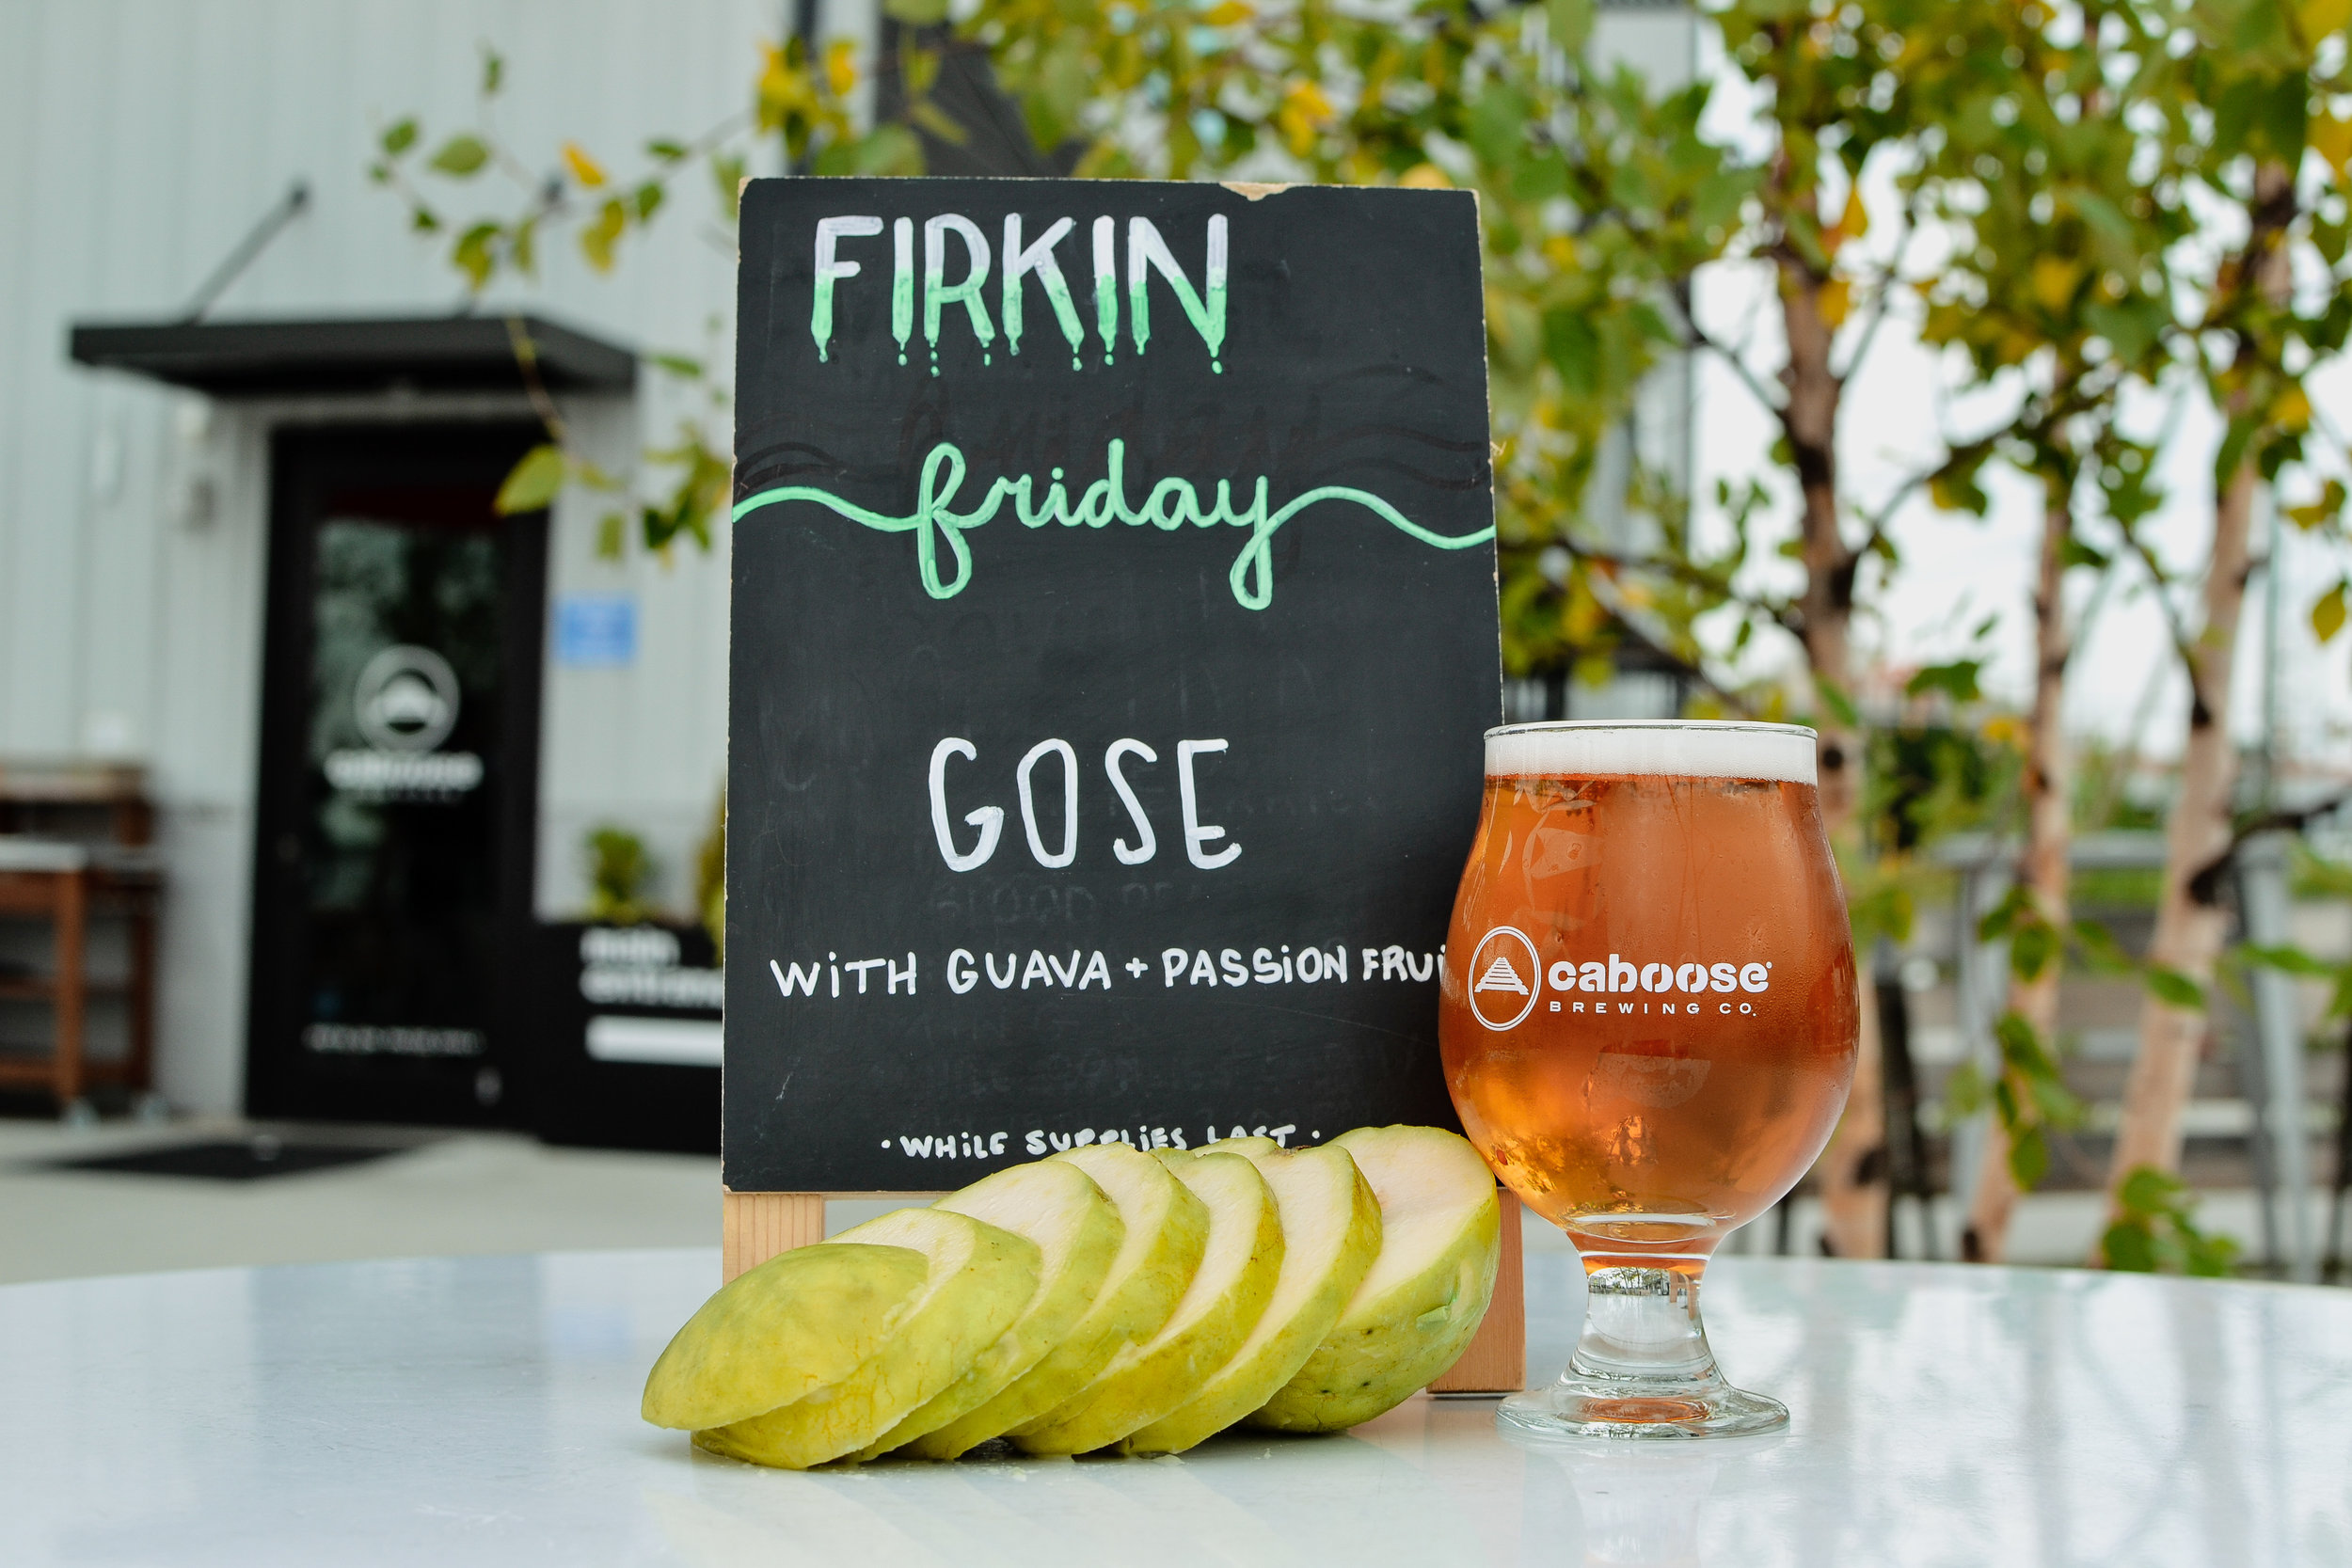 Gose with Guava and Passion Fruit